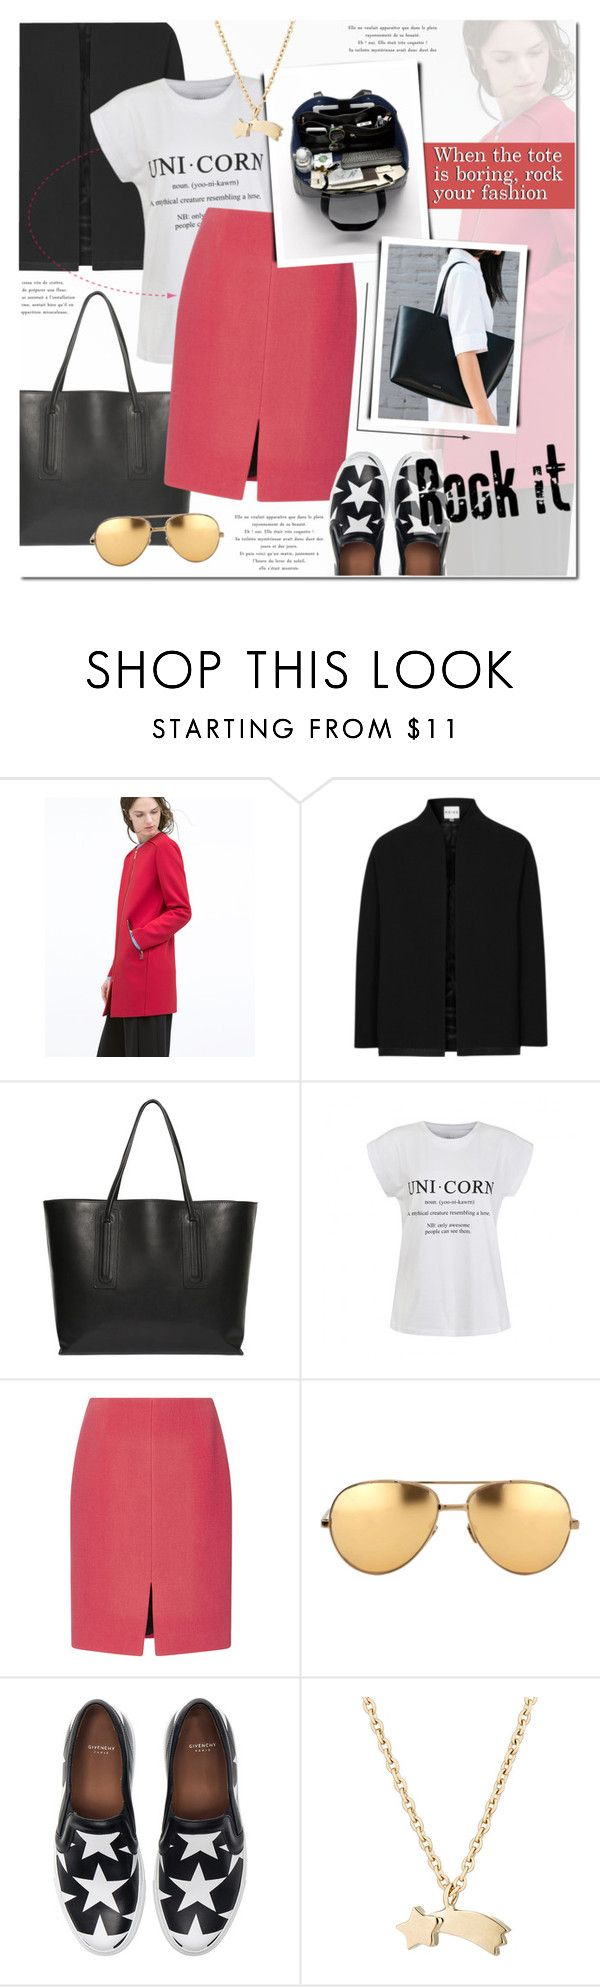 """Tote Bags"" by anna-anica ❤ liked on Polyvore featuring moda, Zara, Reiss, Rick Owens, Ally Fashion, Sonia Rykiel, Linda Farrow, Givenchy, Minor Obsessions e women's clothing"